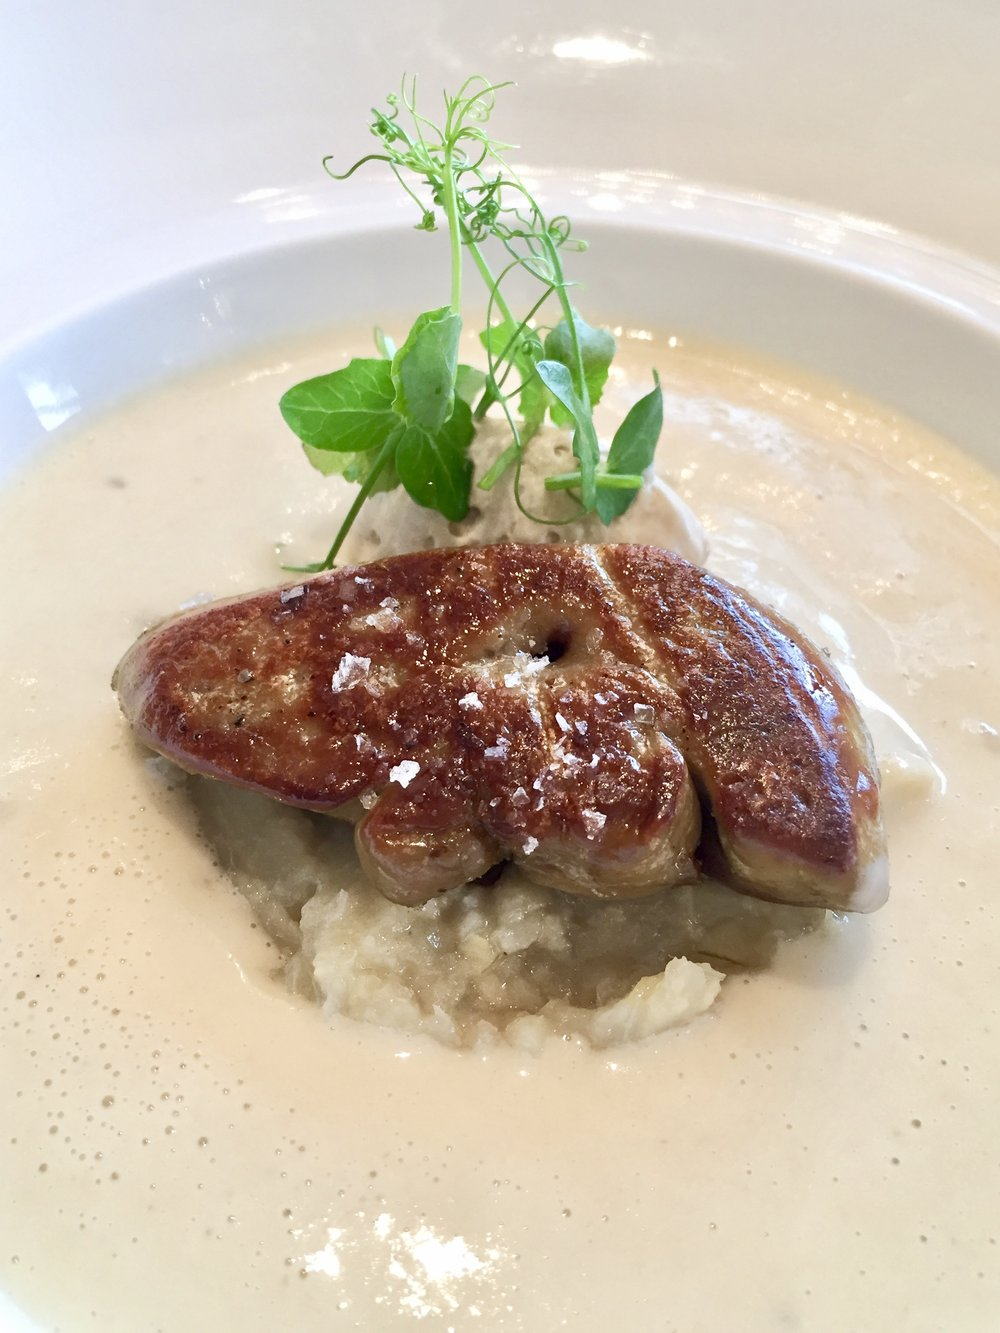 Brittany artichoke velouté, pan seared duck foie gras, black truffle emulsion.